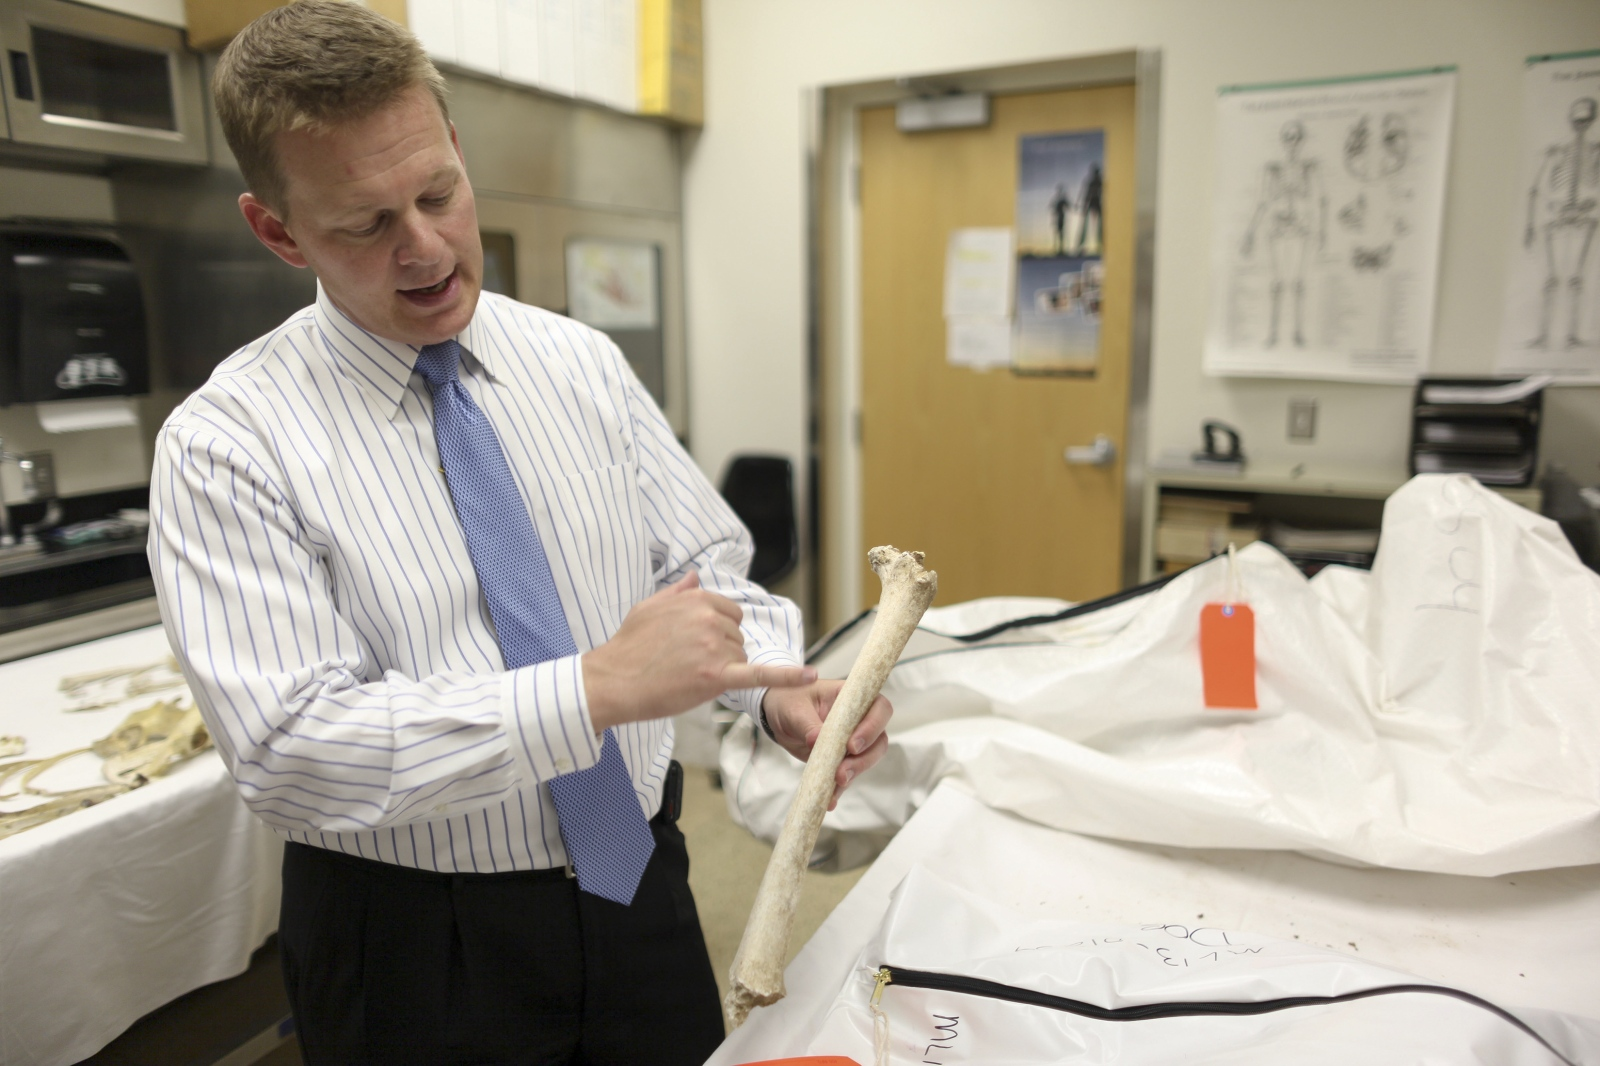 Dr. Gregory Hess, chief medical examiner of Pima County Office of the Medical Examiner in Tucson, Ariz. holds skeletal remains of an unidentified border crosser on Tuesday, May 21, 2013.